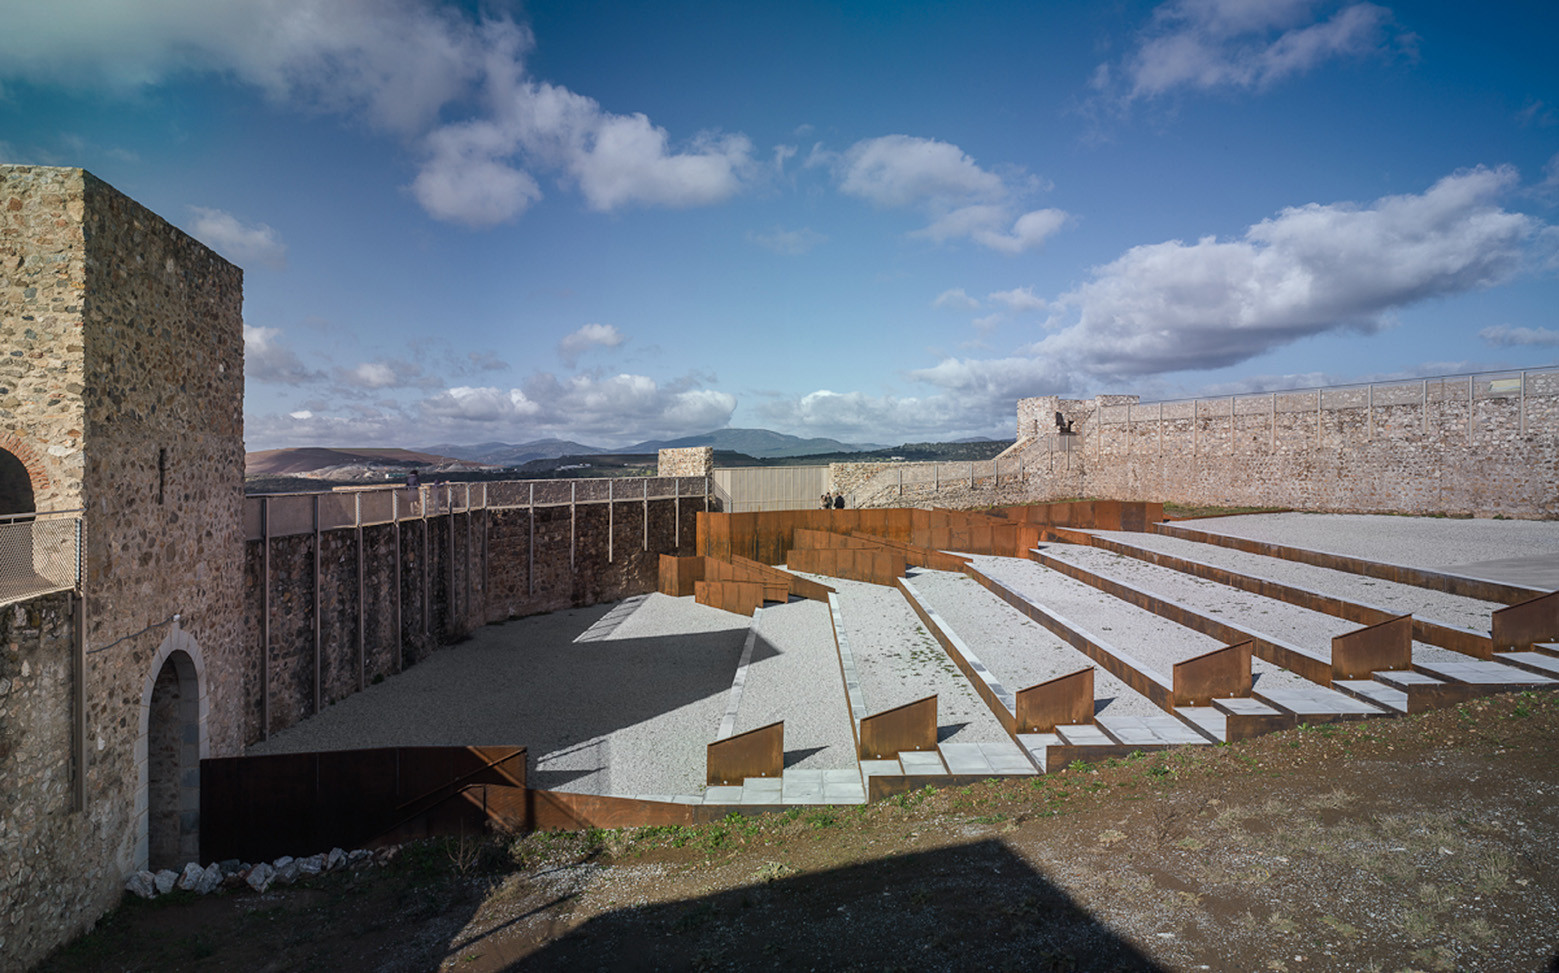 EERJ Adaptation of Patio de Armas in El Real de la Jara Castle / Villegas Bueno Arquitectura, © Jesús Granada